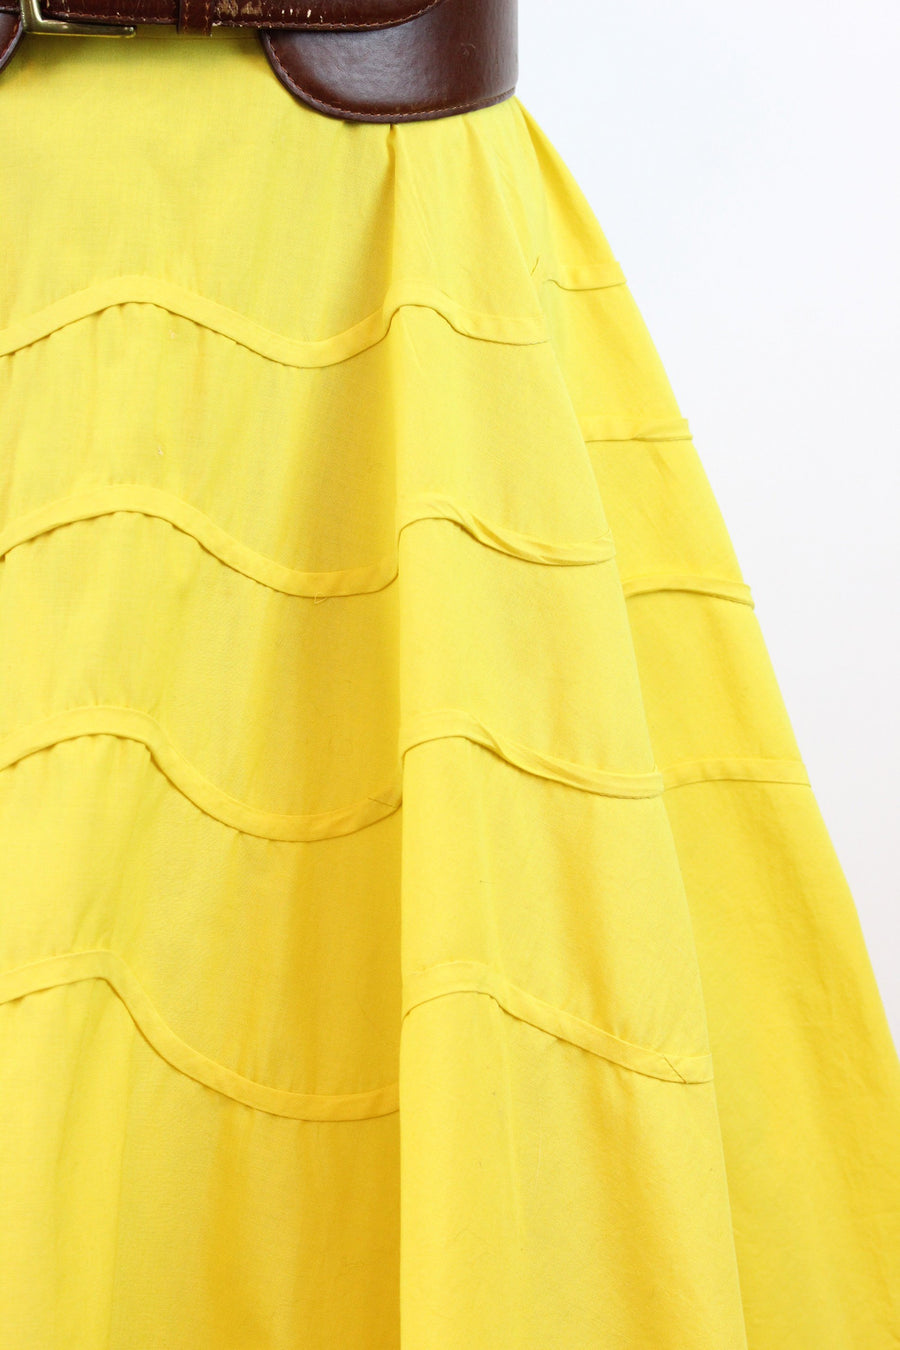 1950s Miami Miss yellow cotton halter dress | vintage summer dress | small